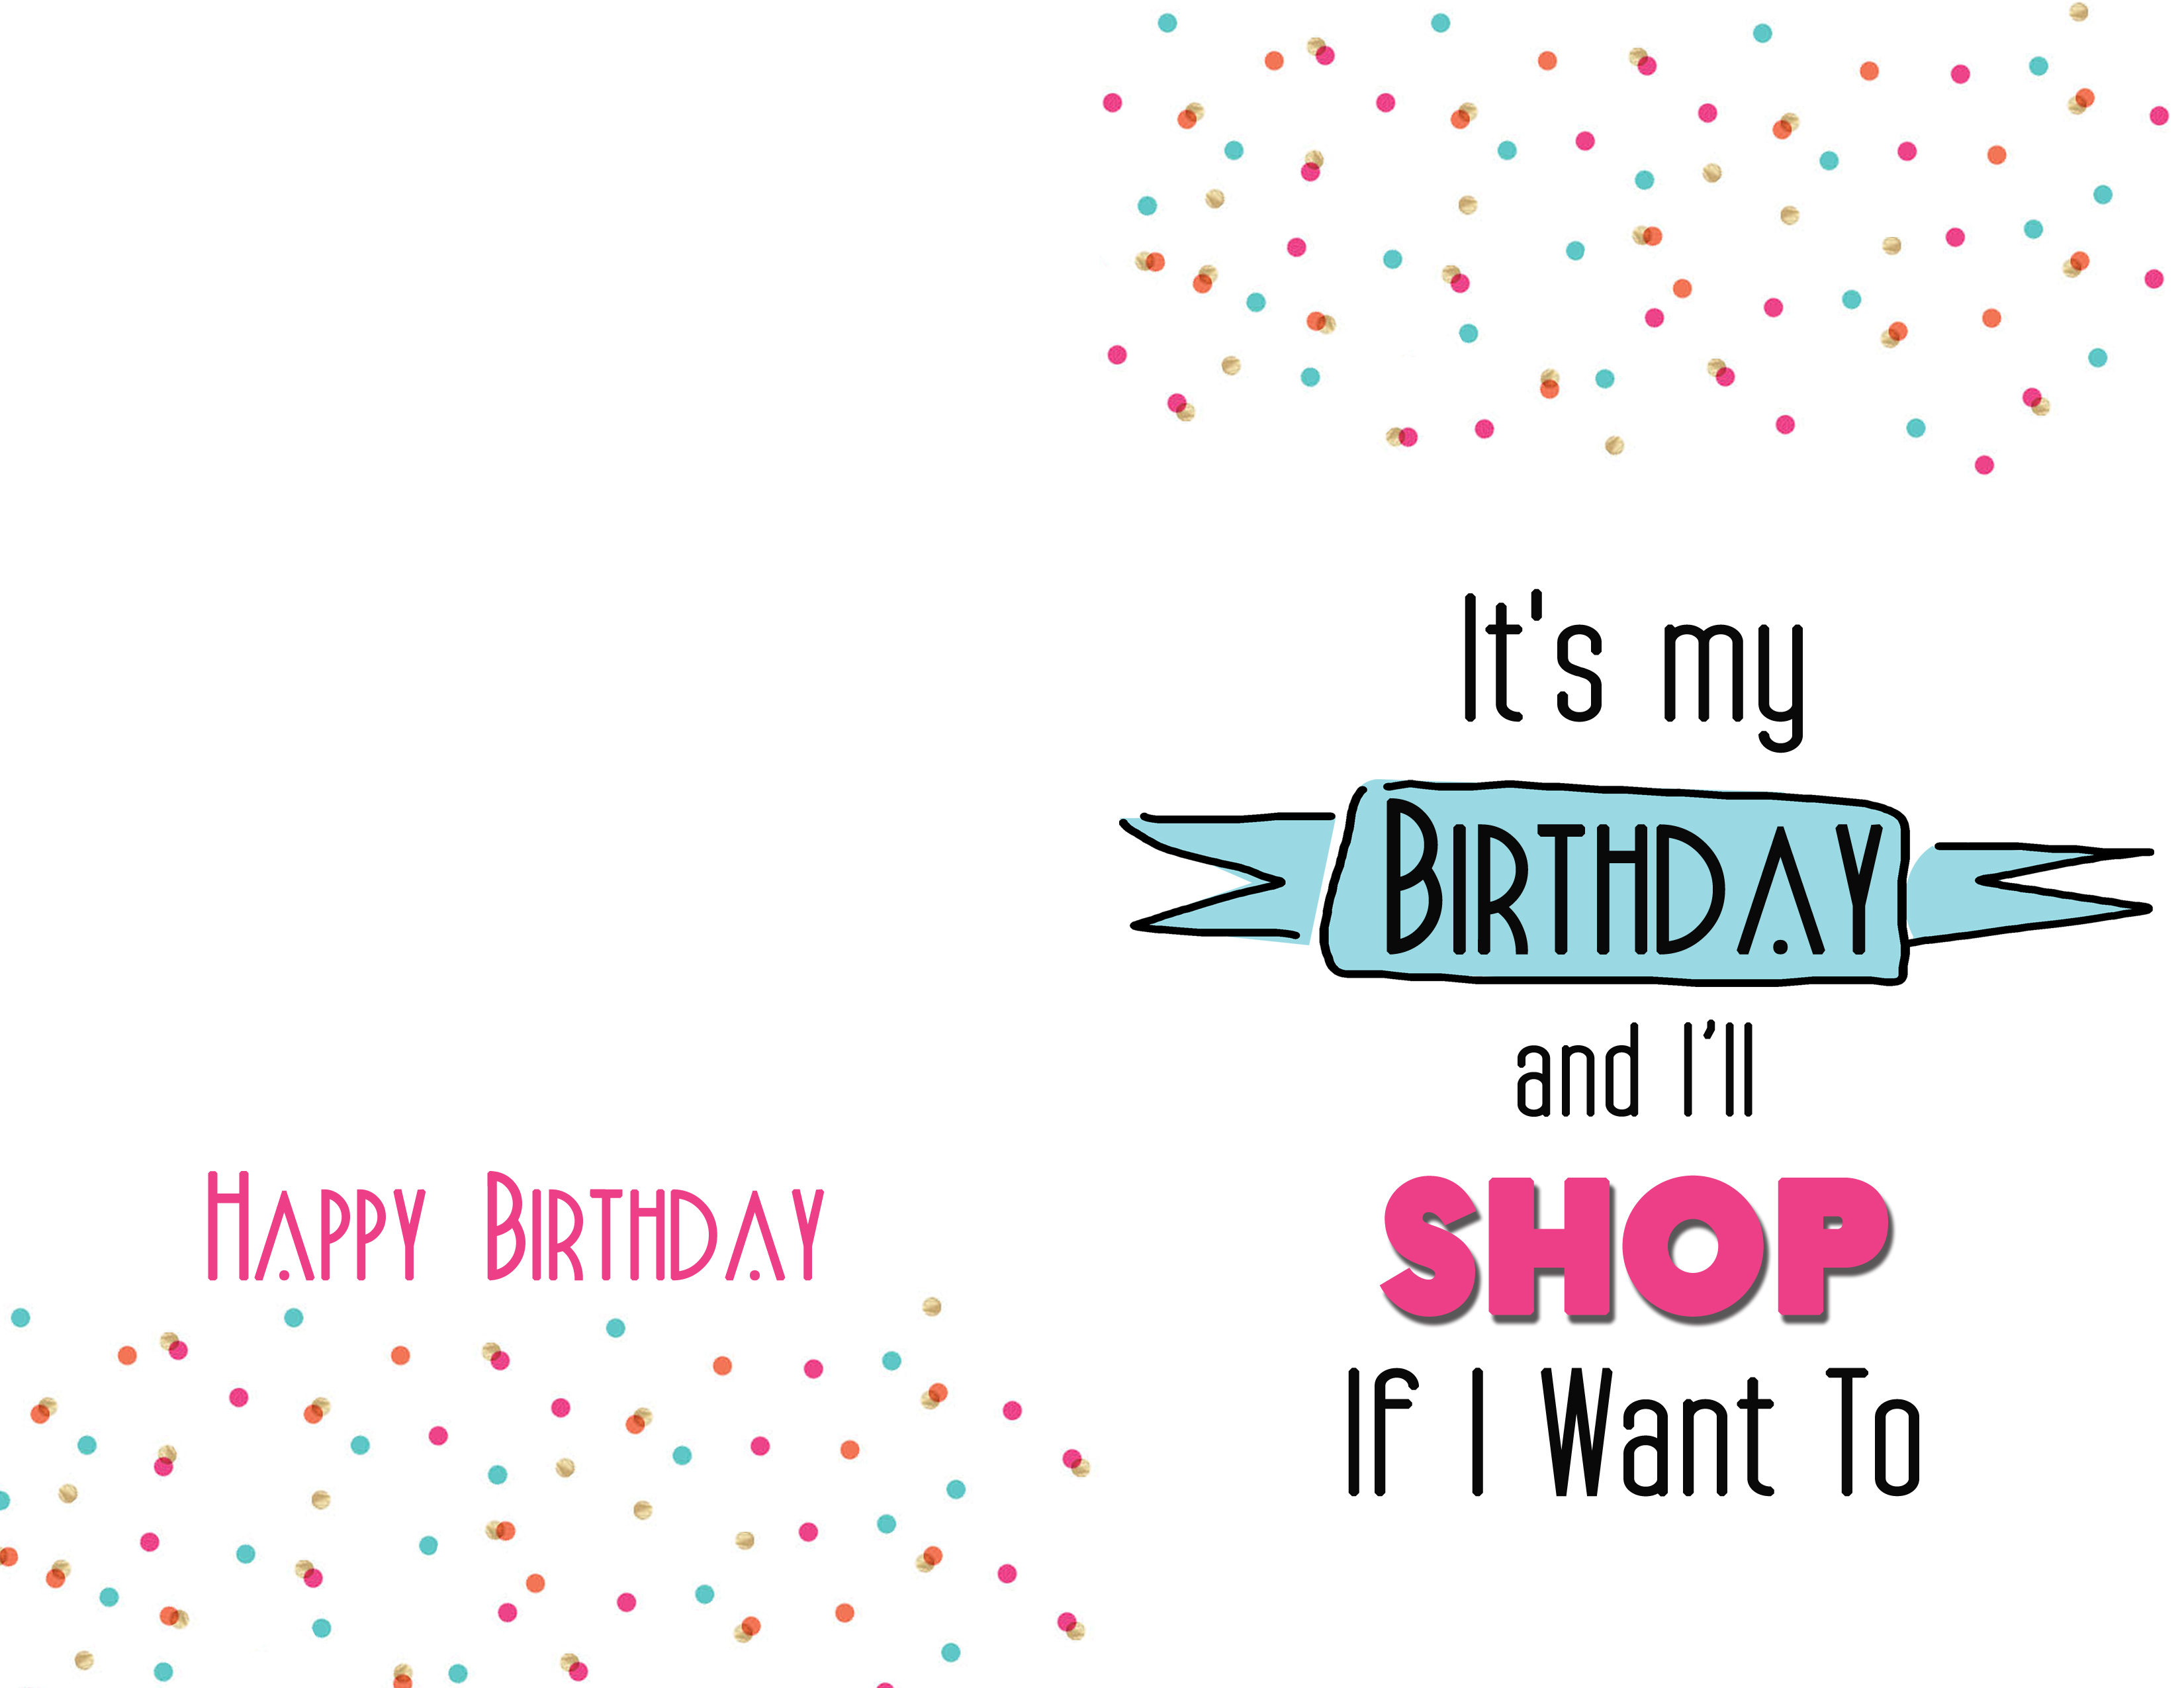 Its my birthday printable cards 8x10s over the big moon download the its my bday shop card bookmarktalkfo Choice Image